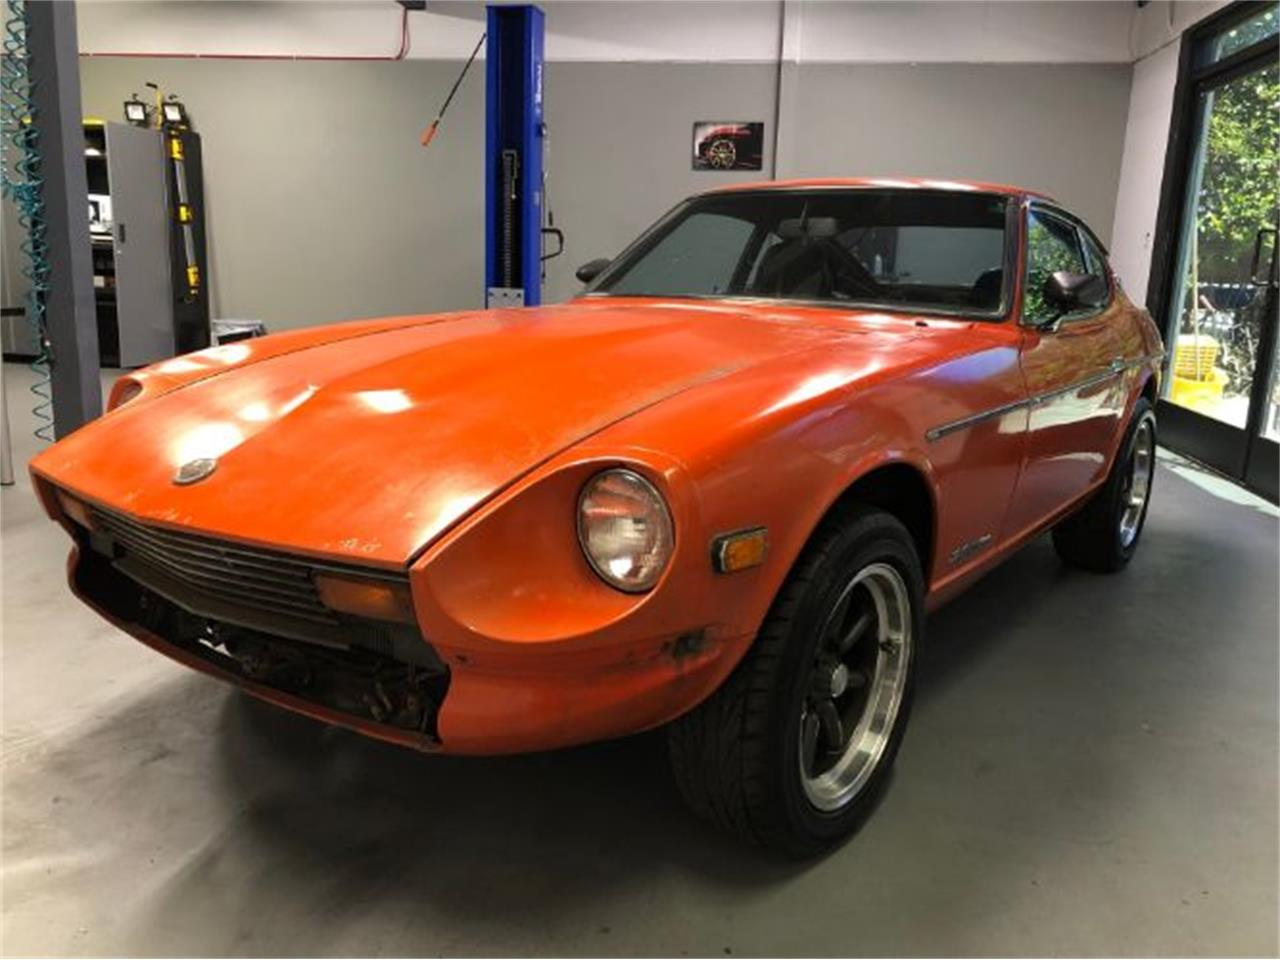 For Sale: 1975 Datsun 280Z in Cadillac, Michigan